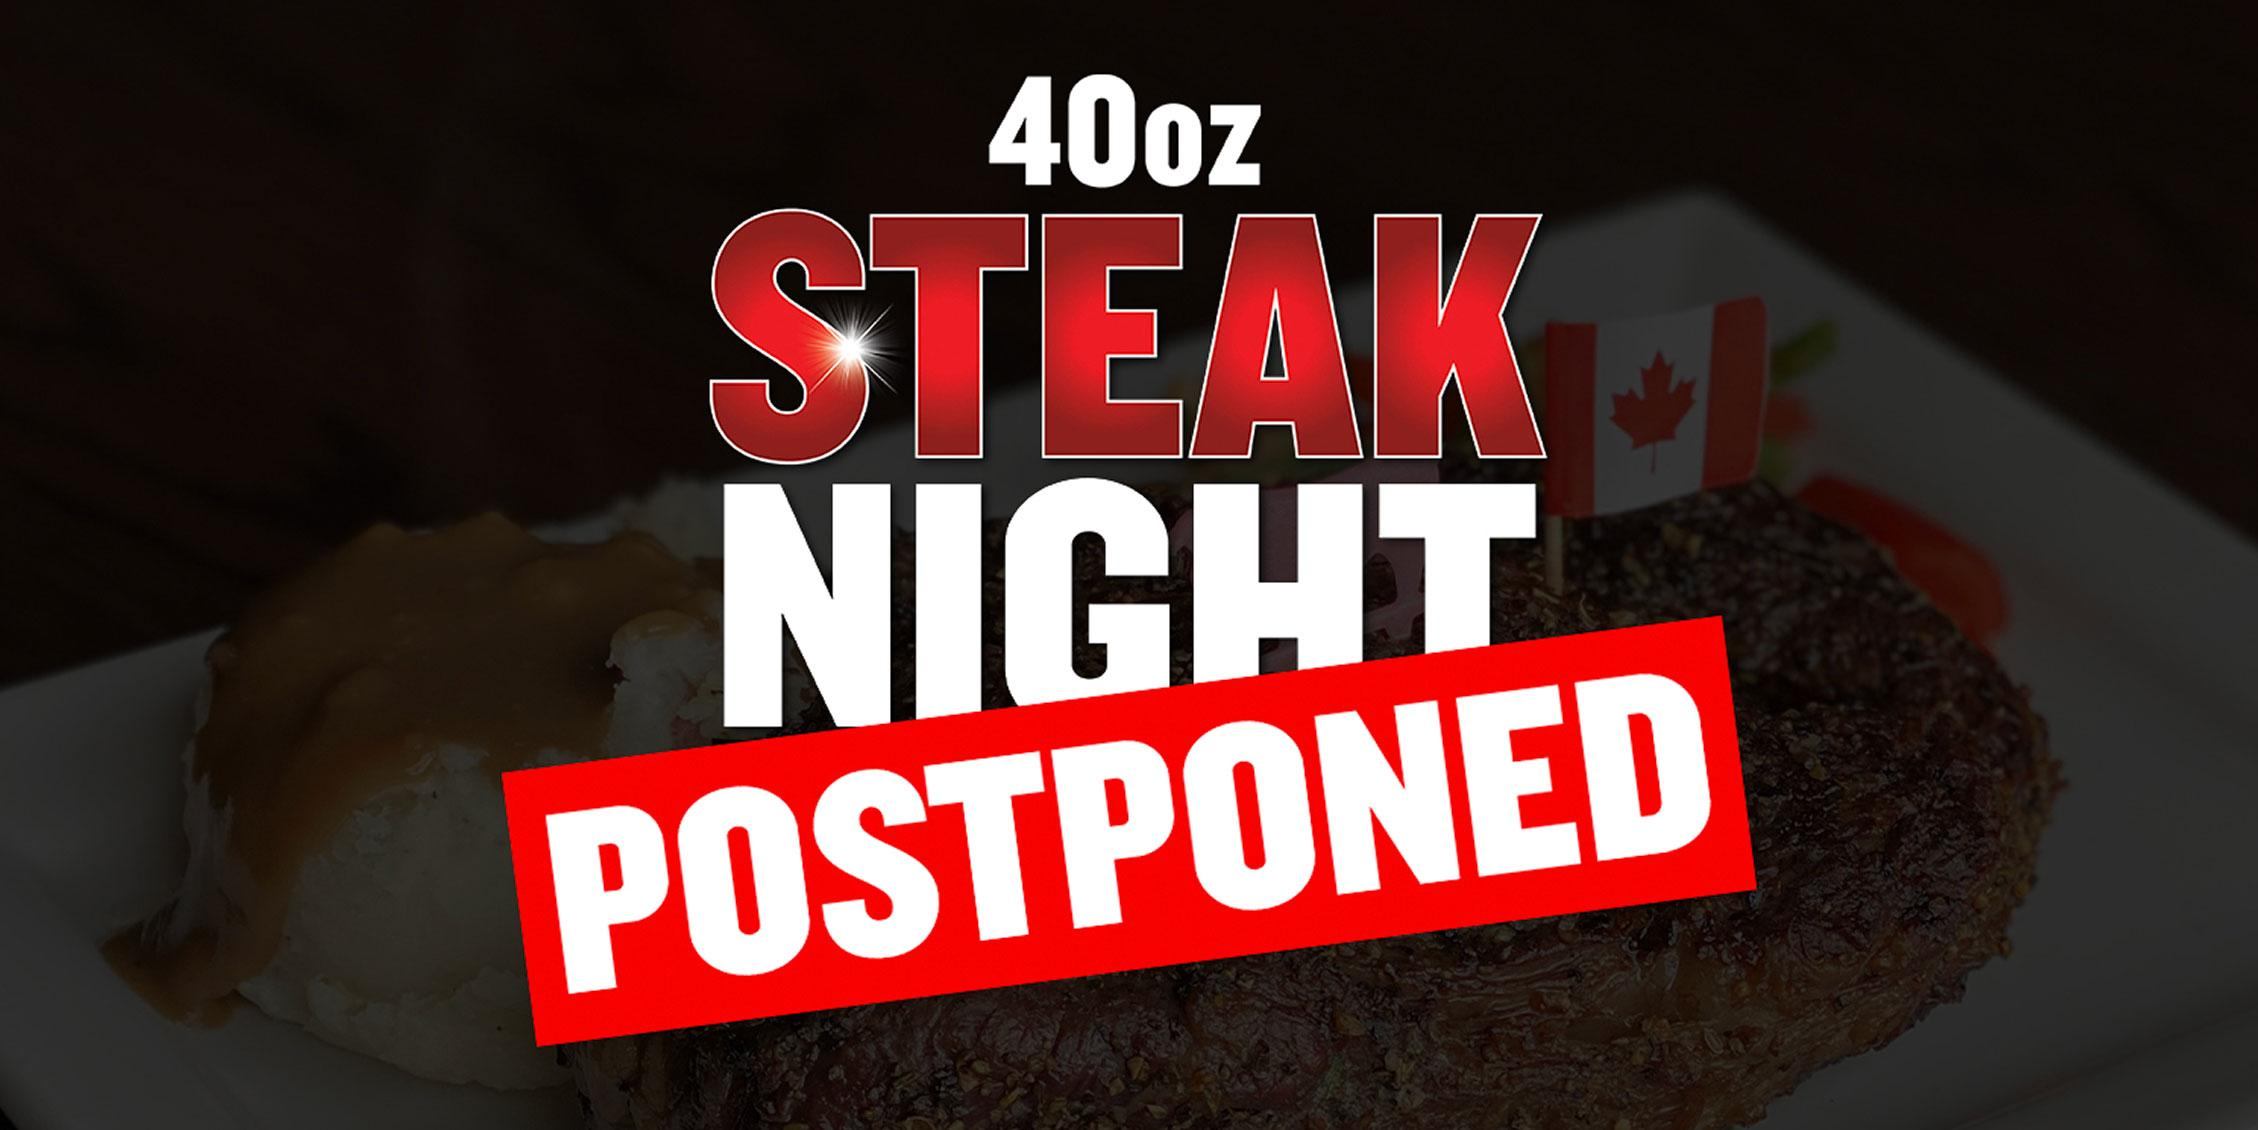 40oz Steak Night (Regina - Eastgate)